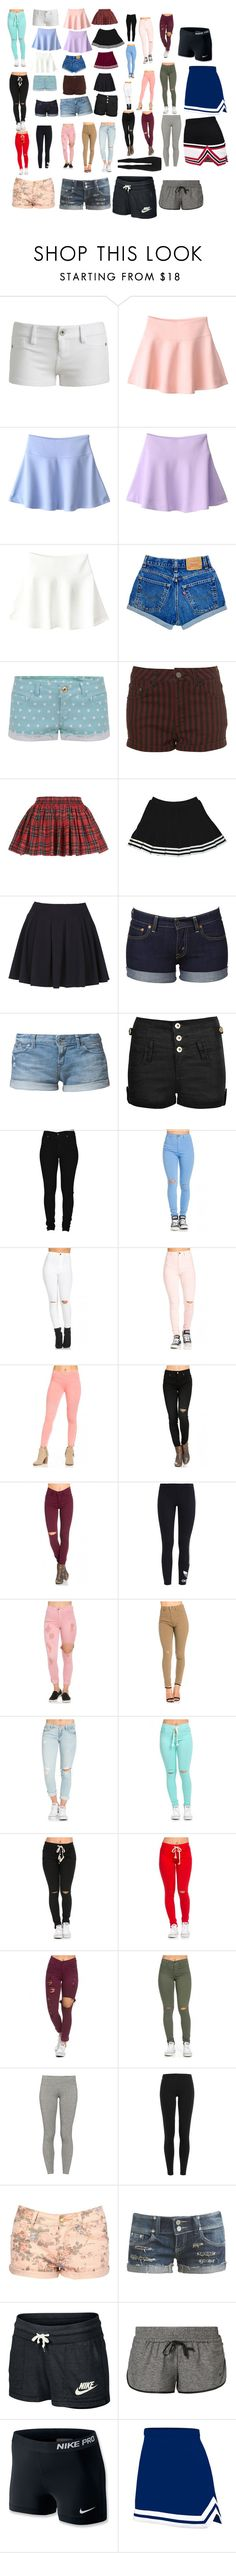 """""""Bottoms"""" by hannalove1234 ❤ liked on Polyvore featuring Wet Seal, TALLY WEiJL, Parisian, Don't Ask Amanda, Levi's, Roxy, Cheap Monday, adidas Originals, TNA and Polo Ralph Lauren"""